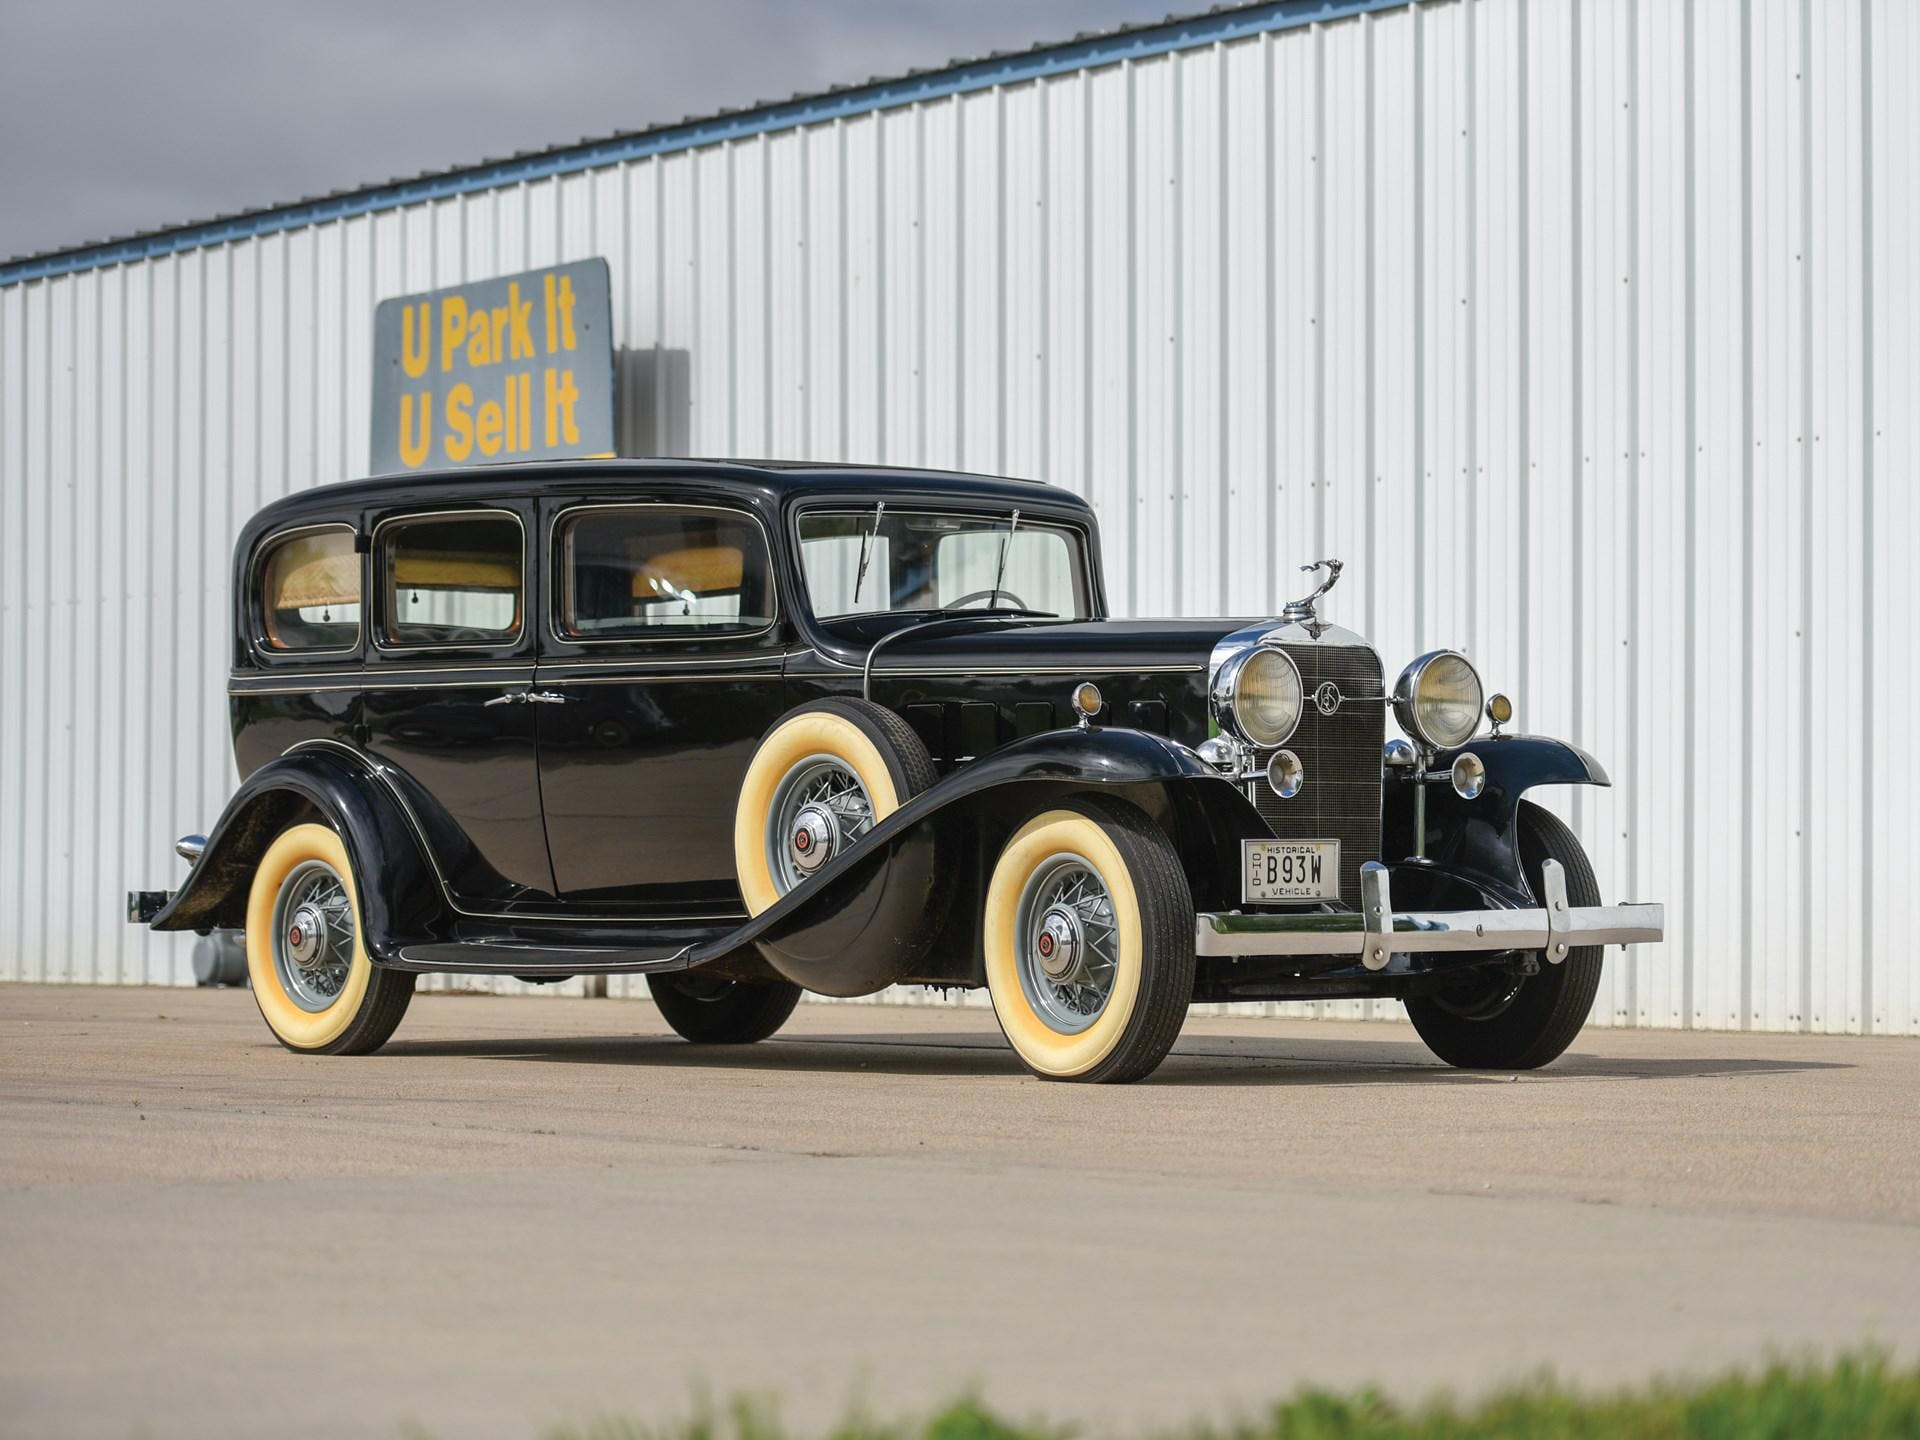 1932 Lasalle Series 345-B Imperial Seven-Passenger Sedan by Fisher